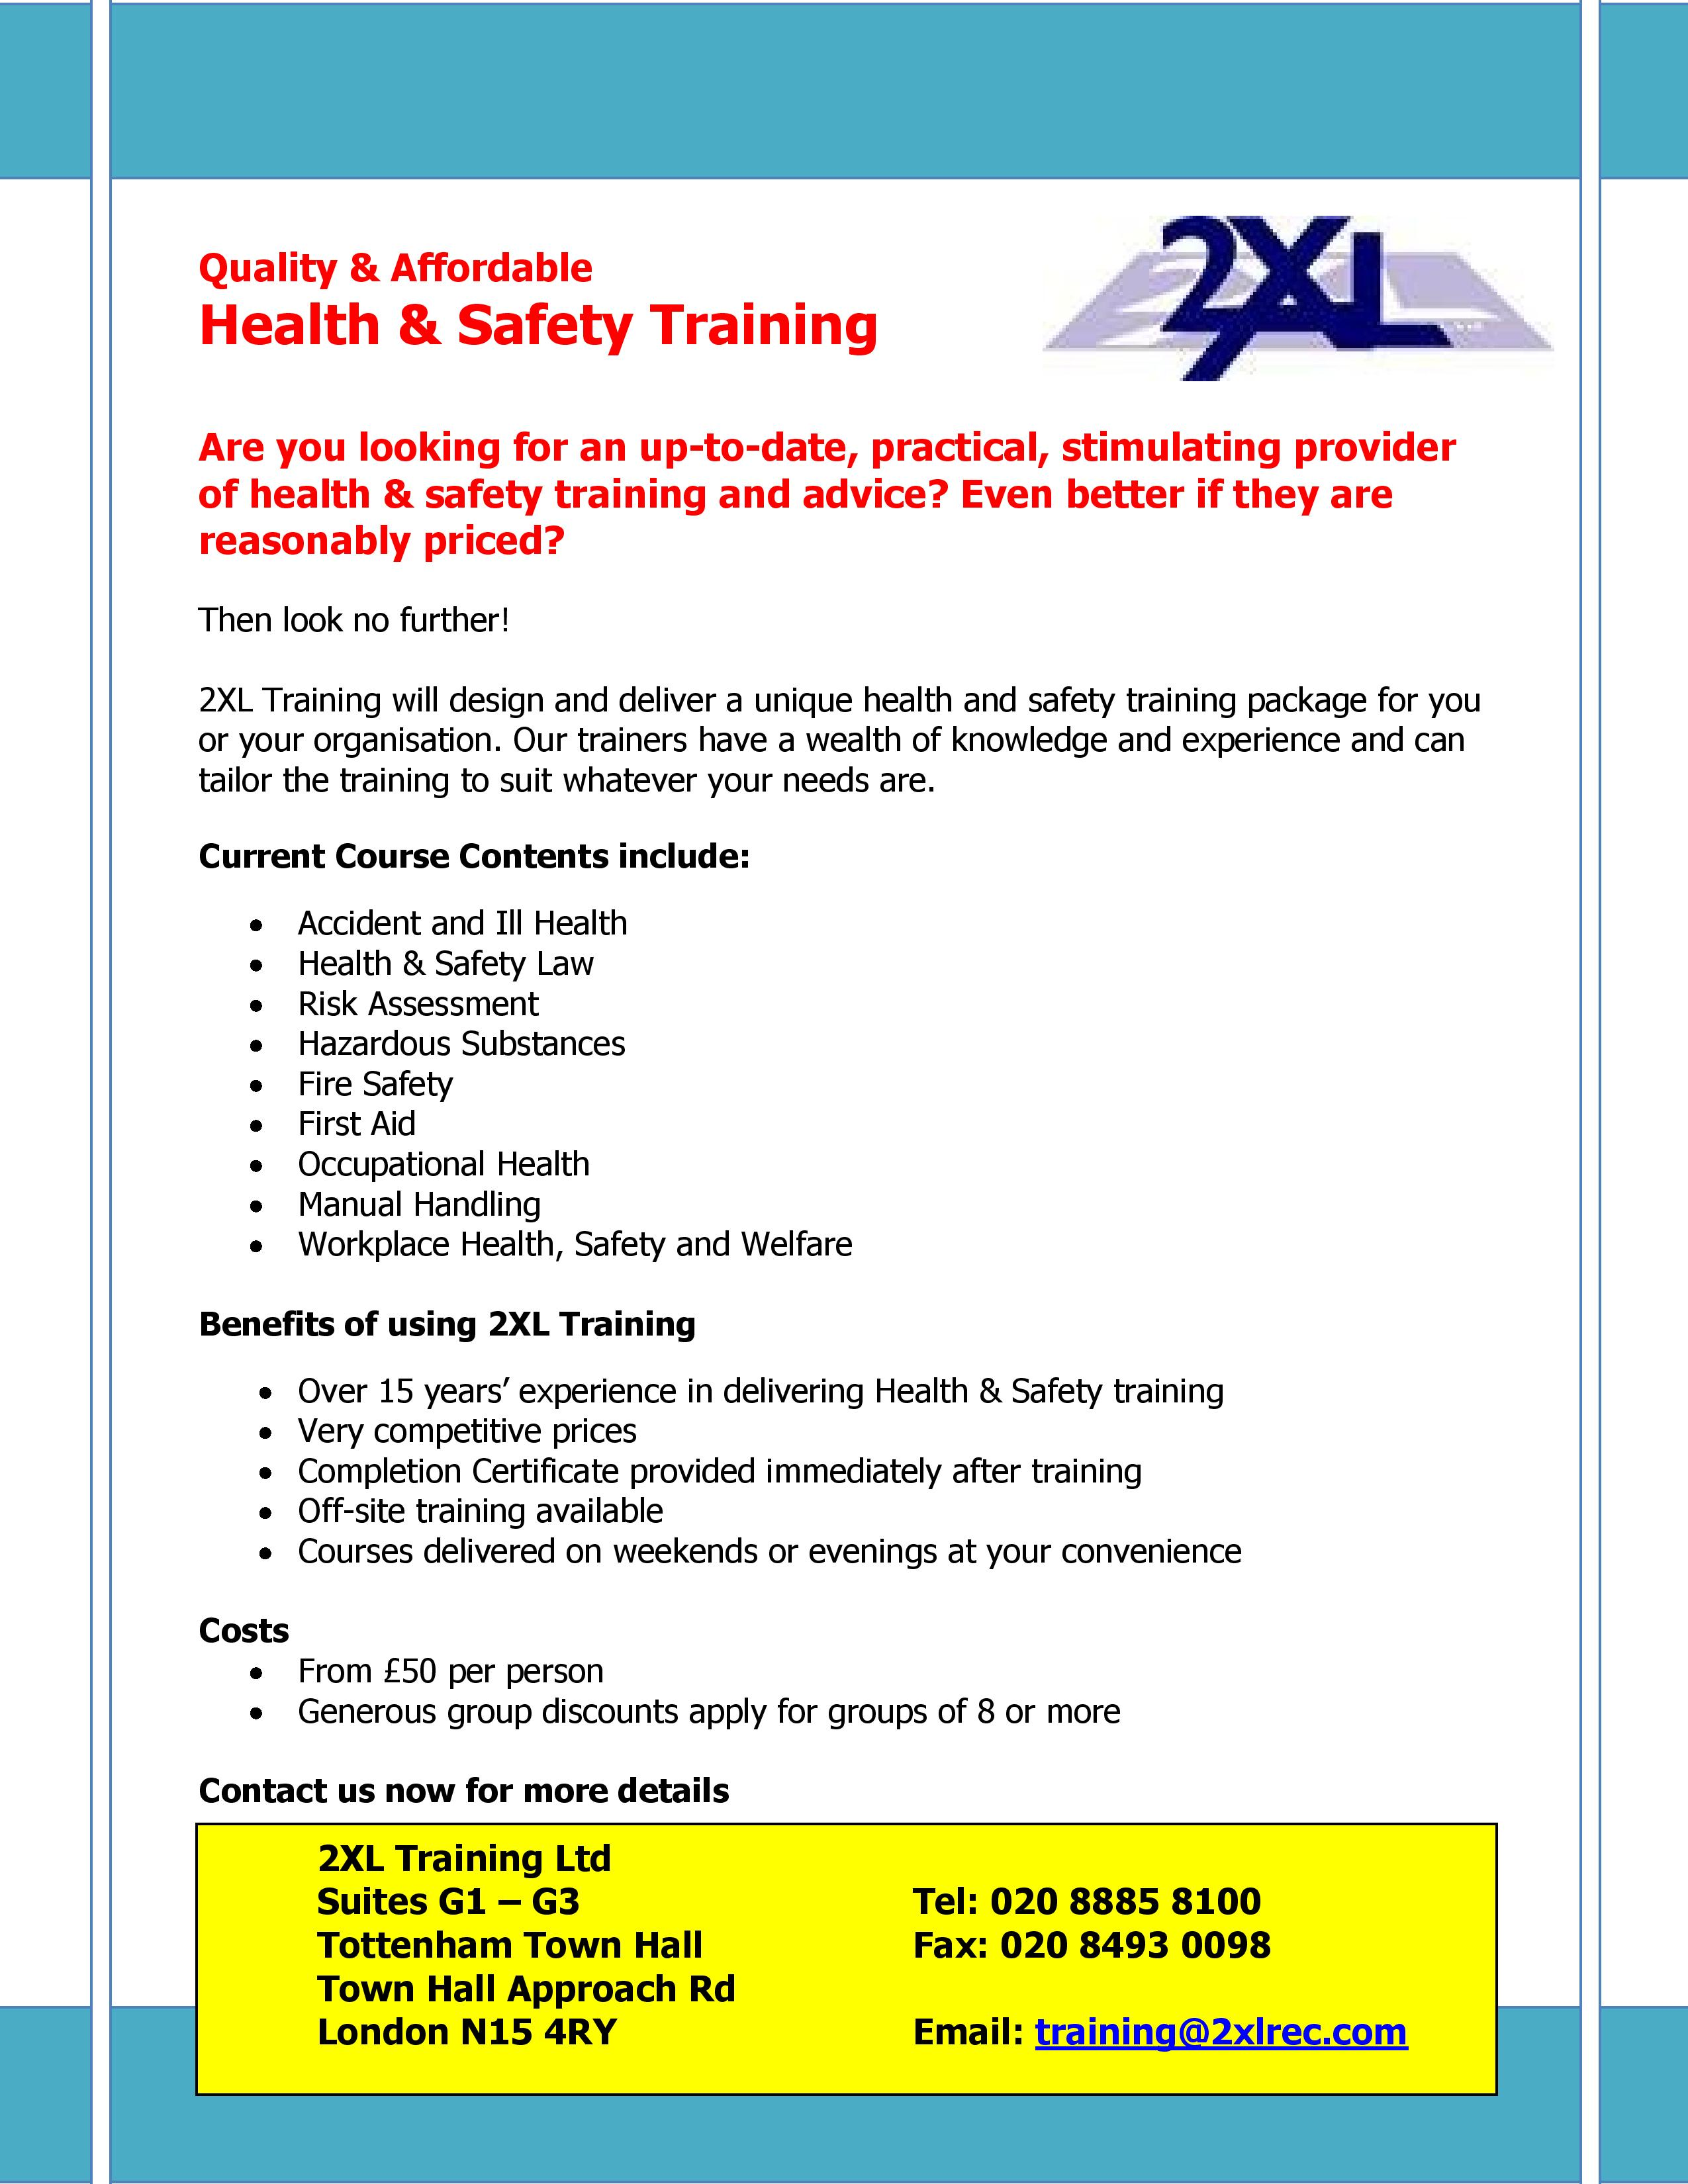 Training quality affordable health safety training bmenational download 1betcityfo Gallery